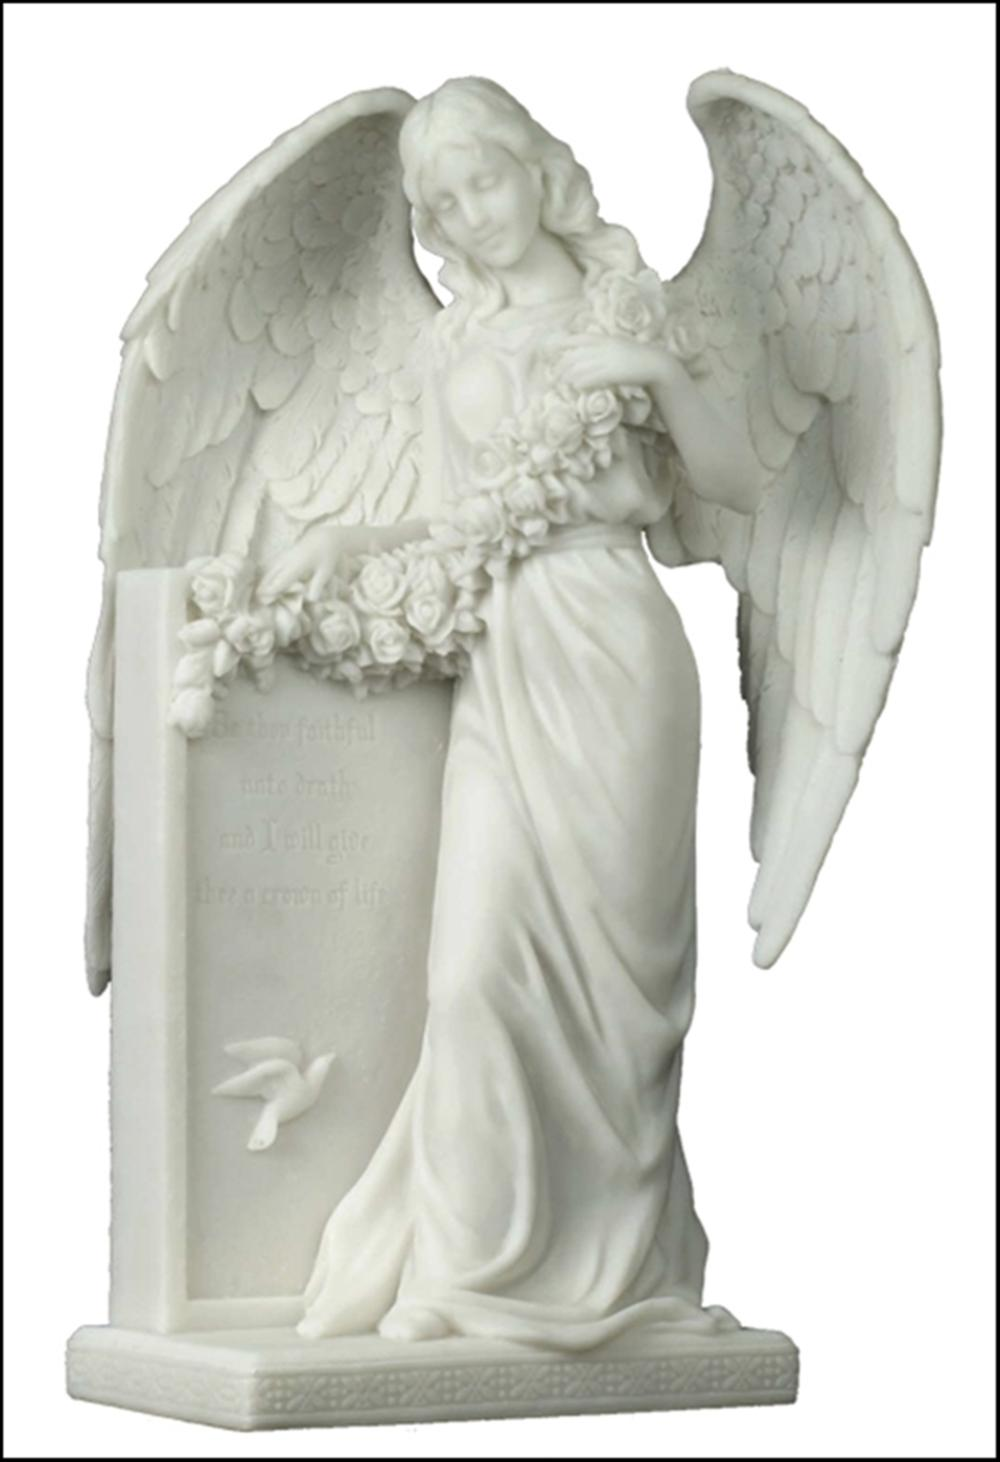 WEEPING ANGEL HOLDING FLOWERS AT THE TOMBSTONE